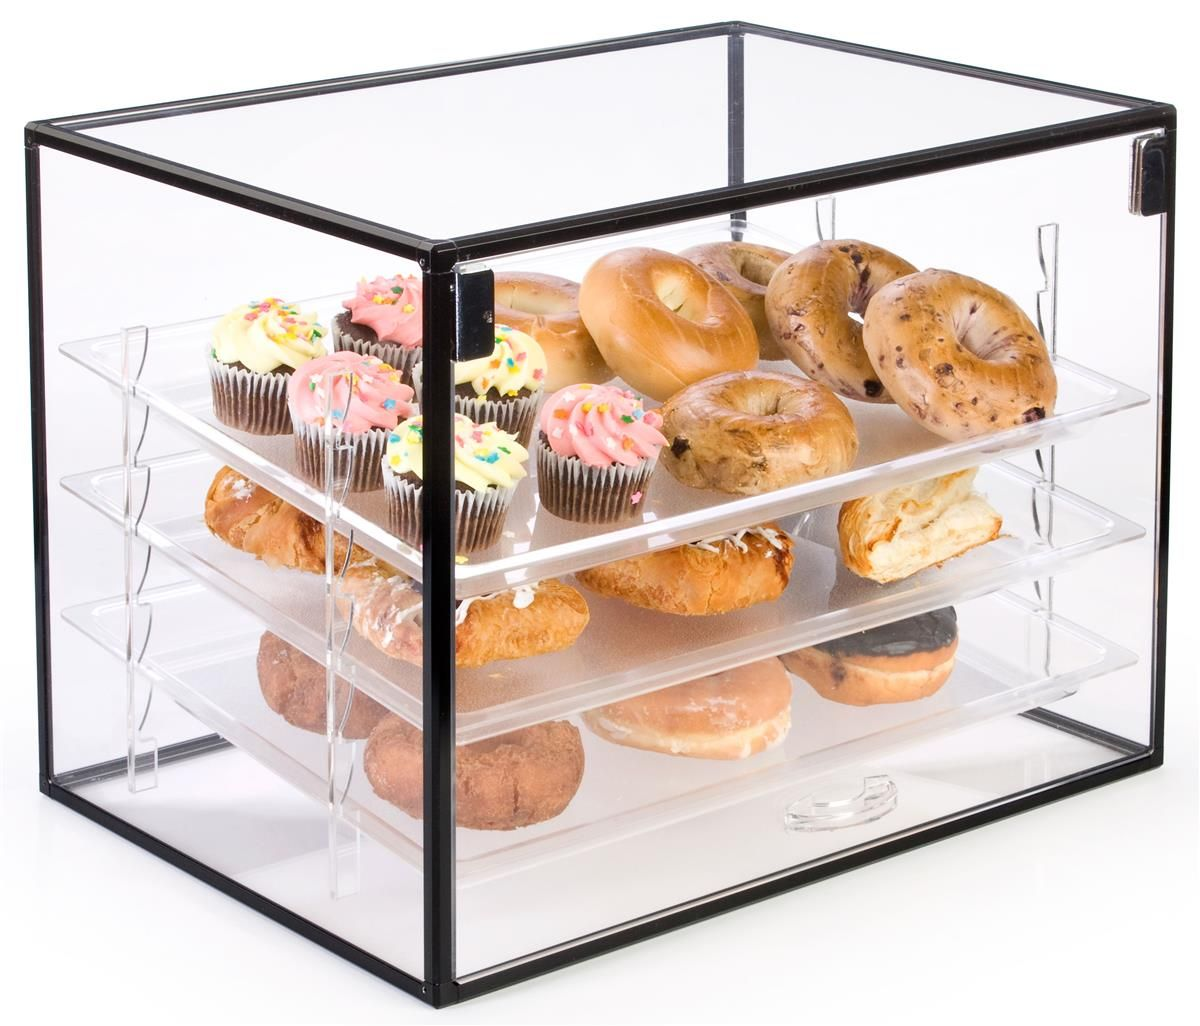 Countertop Bakery Display With Hinged Door And Removable Shelves Bakery Display Pastry Display Cake Display